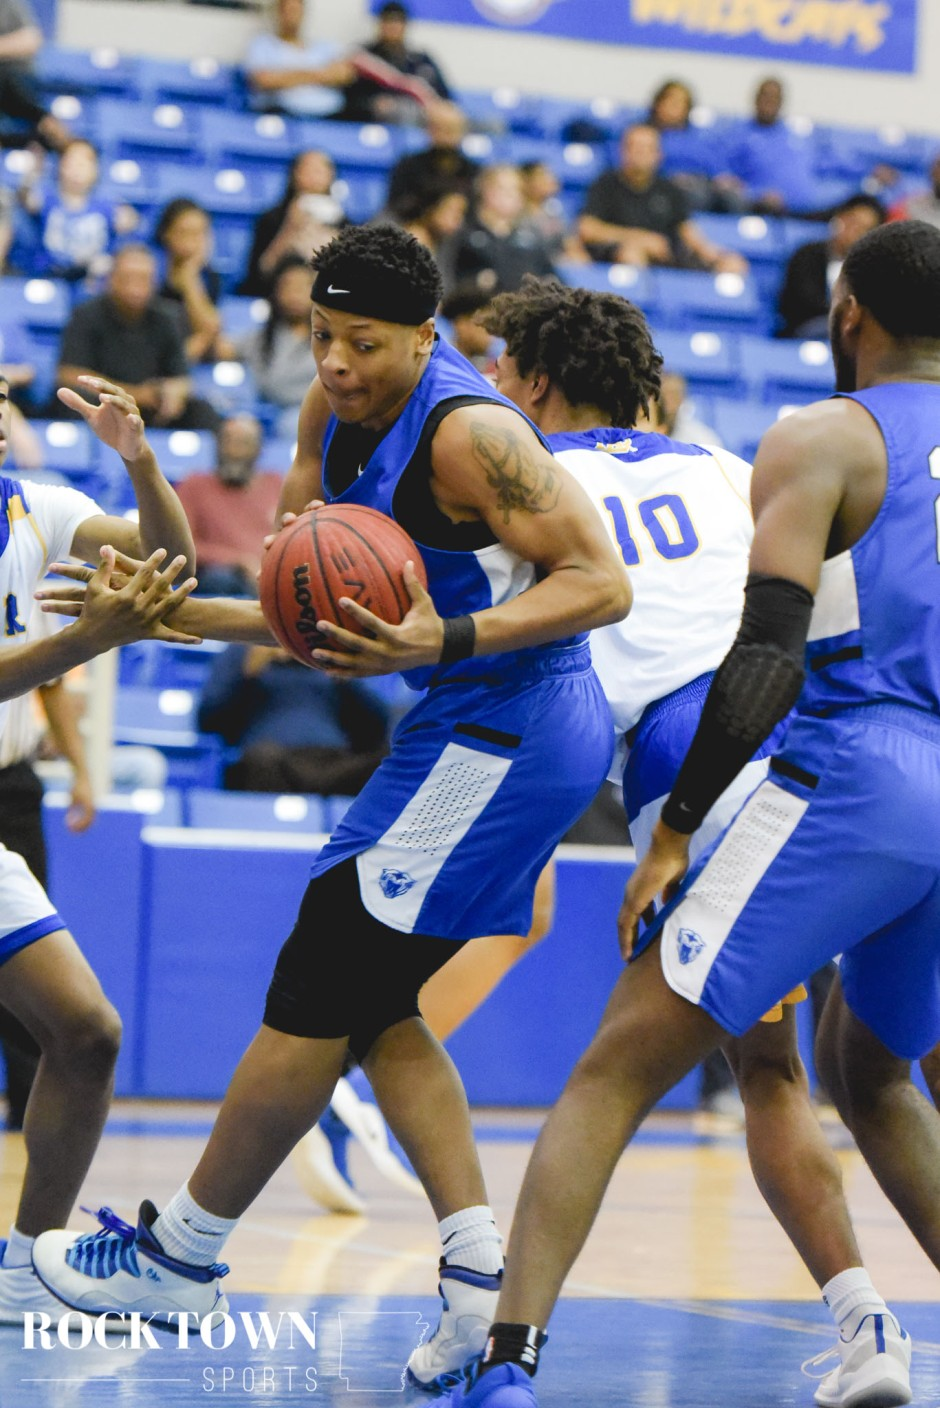 Conway_NLR_bball19(i)-45